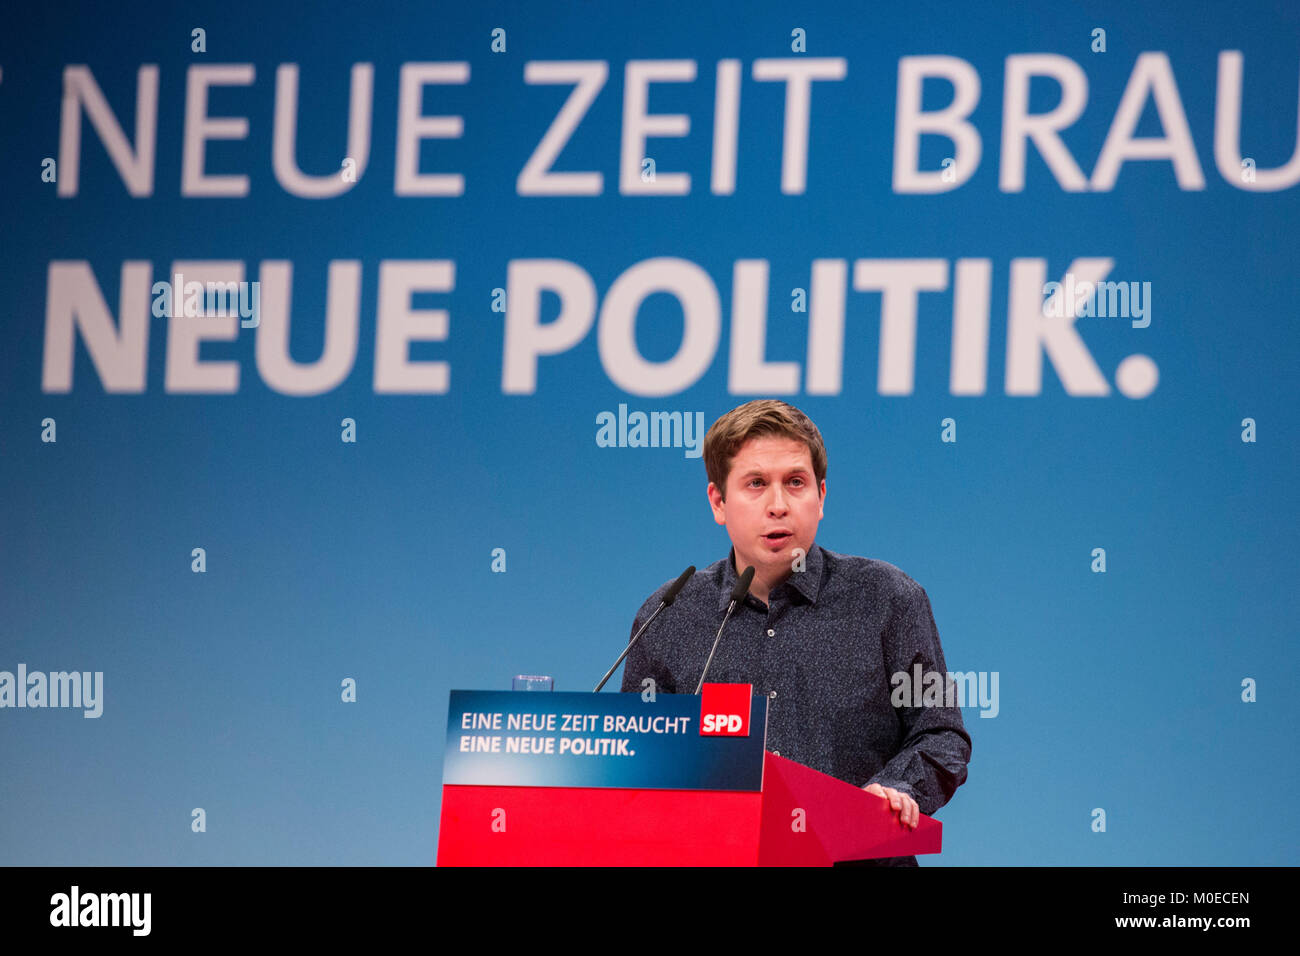 Bonn, Germany. 21 January 2018. Kevin Kühnert, leader of SPD youth party organisation Jusos/Young Socialists. - Stock Image